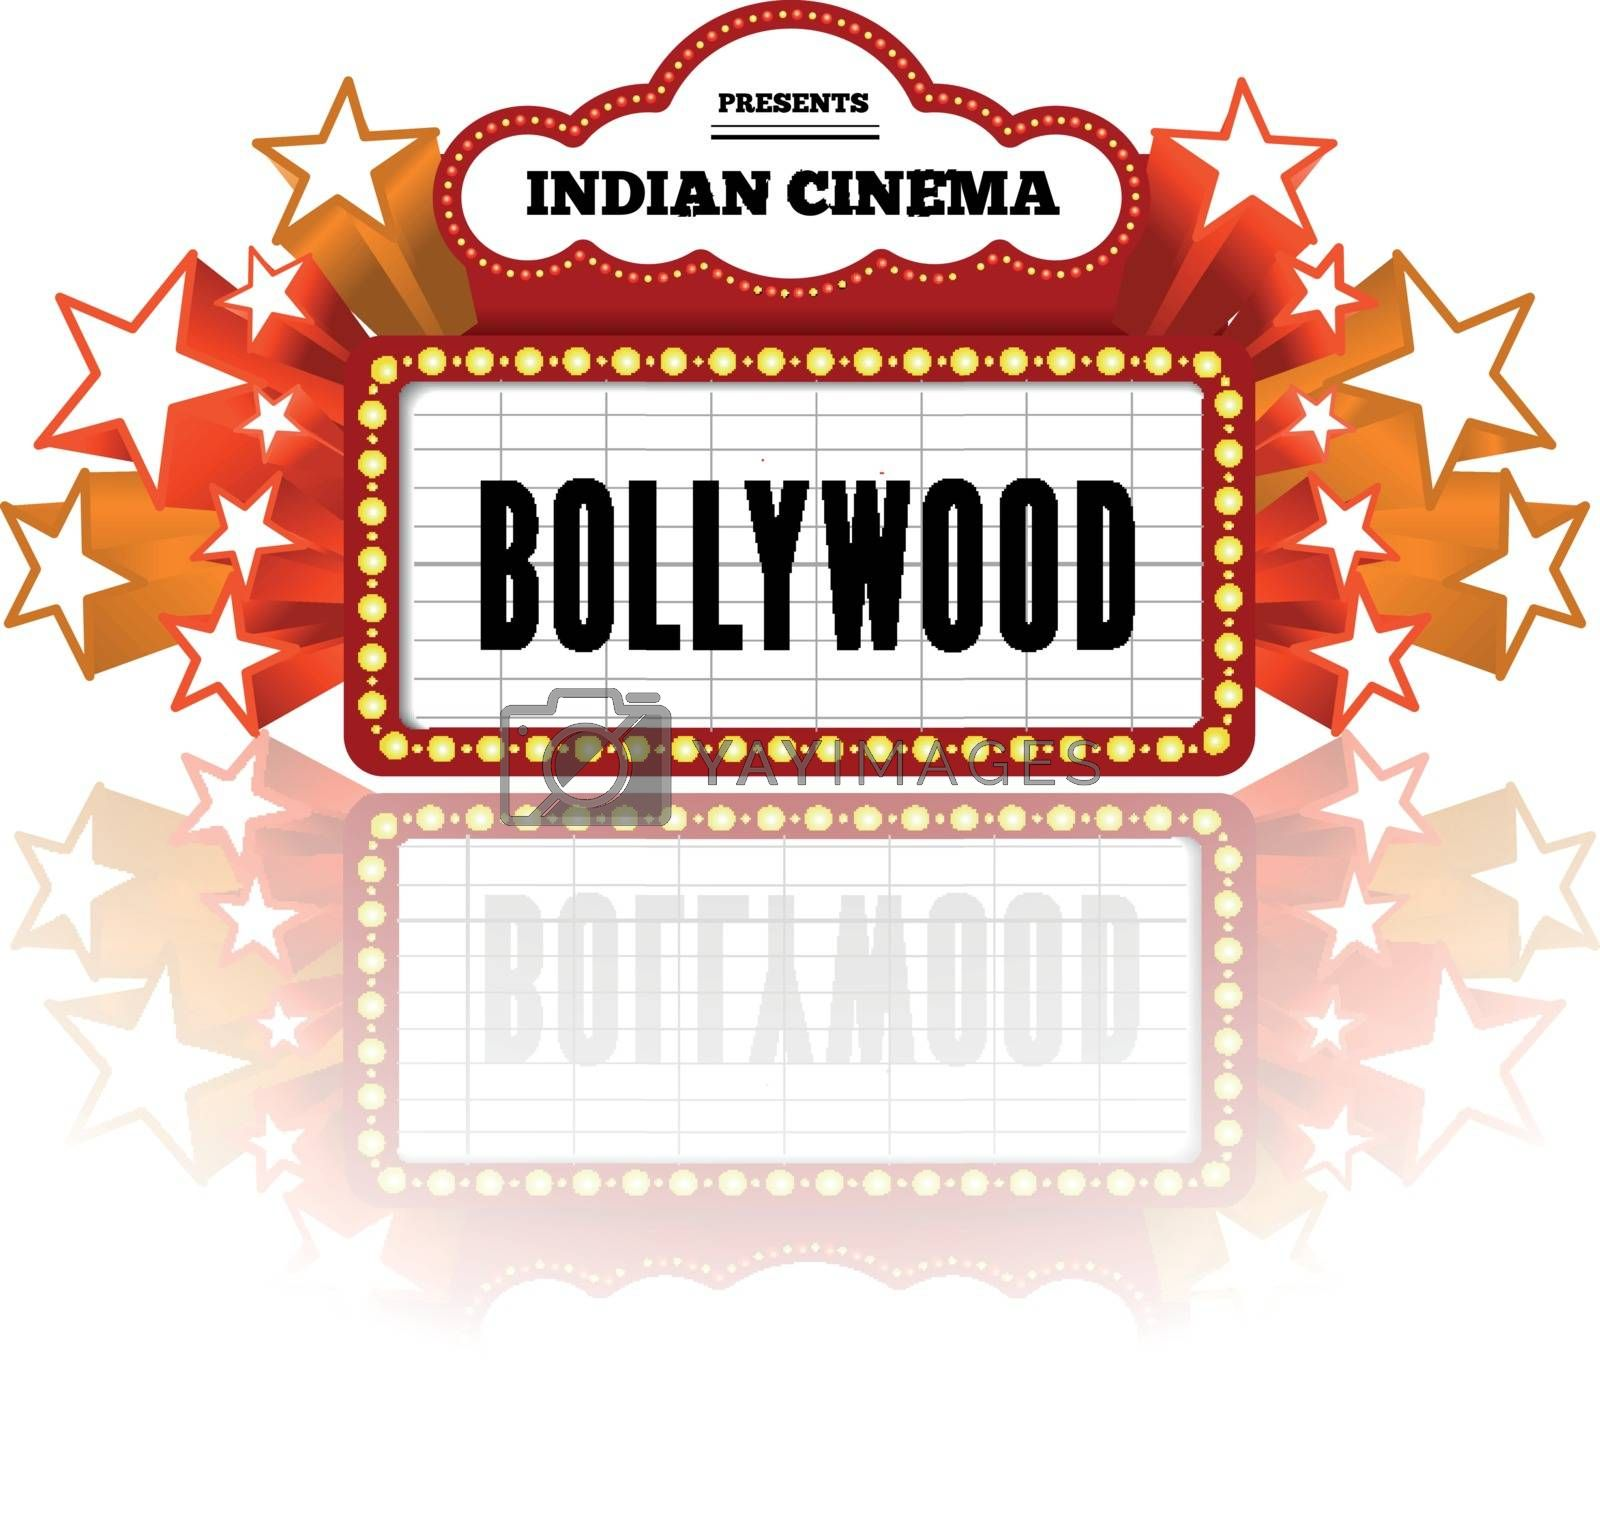 Bollywood is a traditional Indian movie. Vector illustration with marquee lights on white